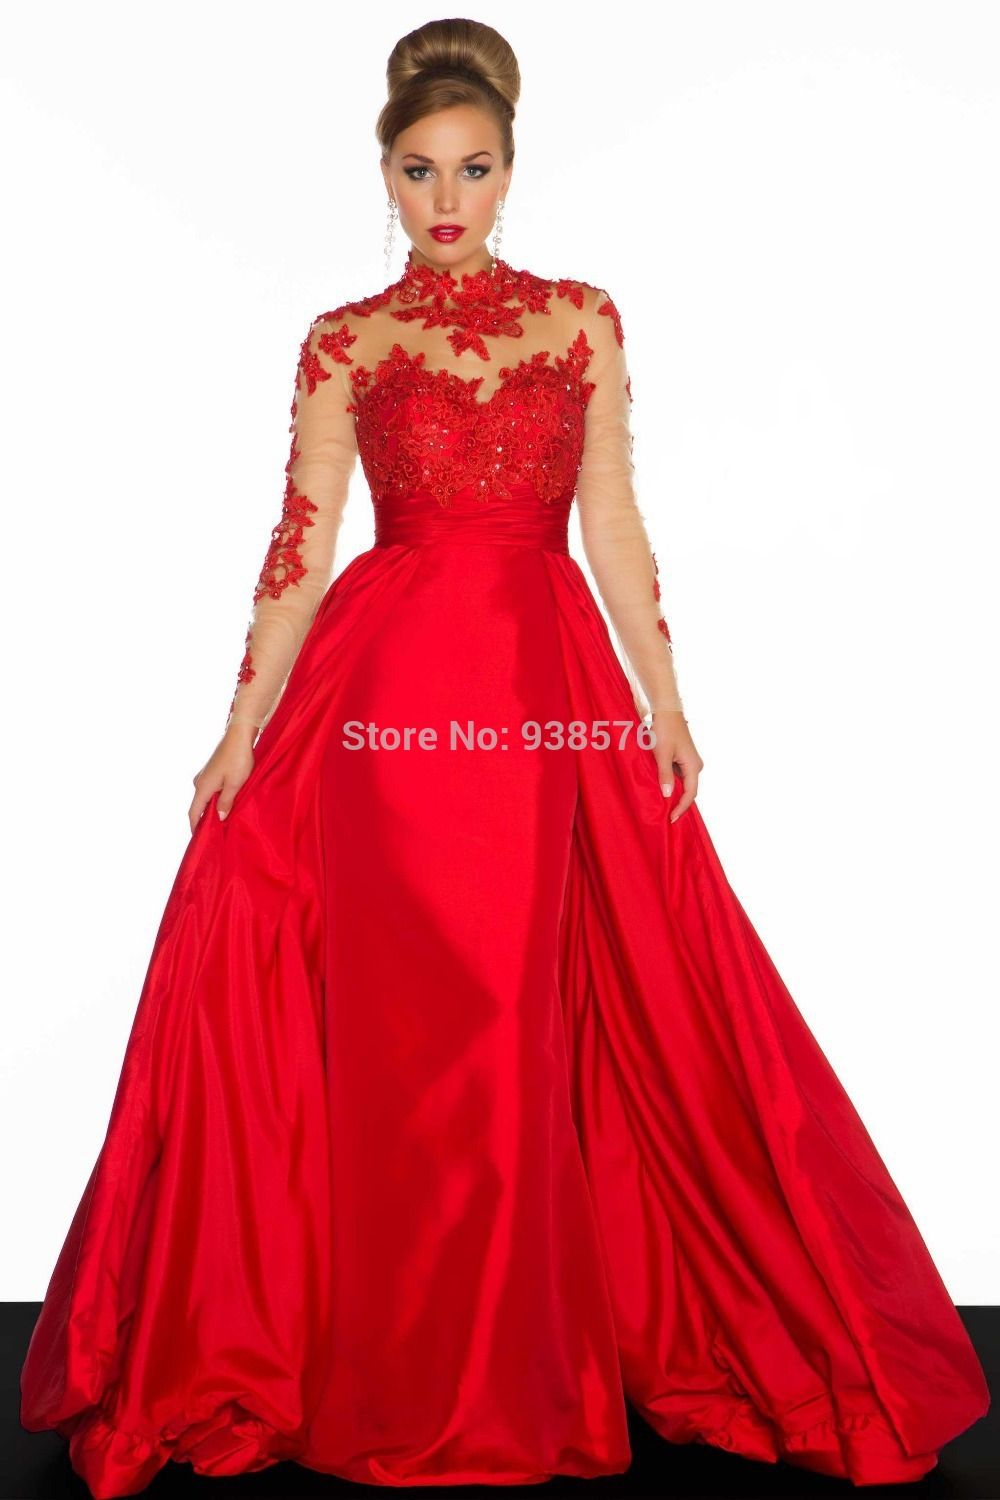 Plus size formal dresses with sleeves google search debous